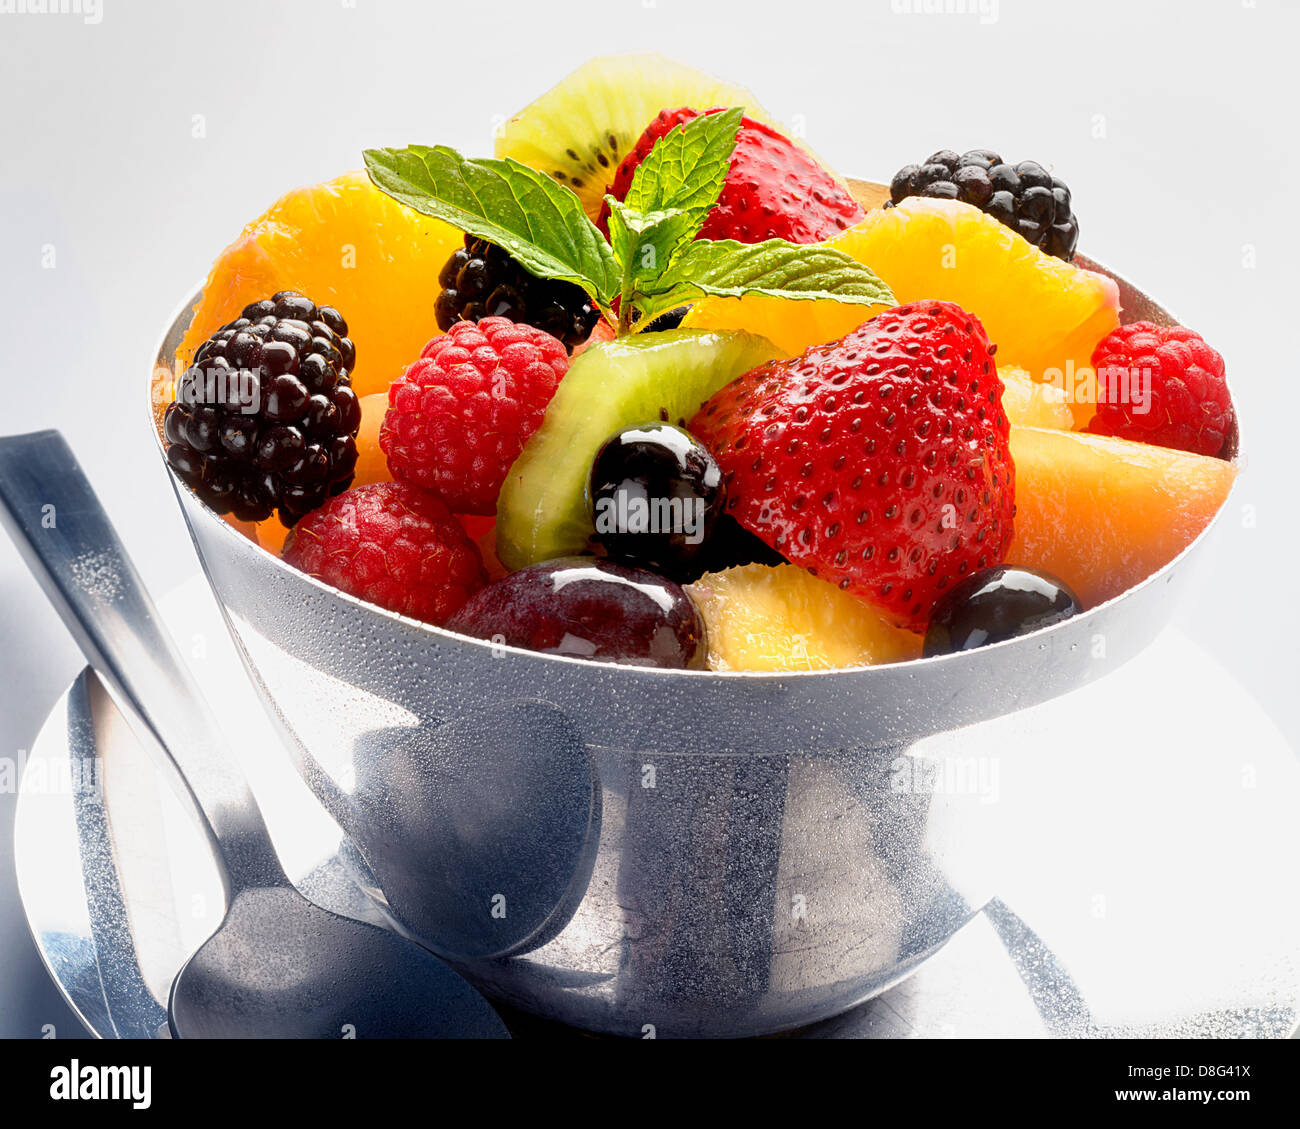 fruits dans le plat Photo Stock